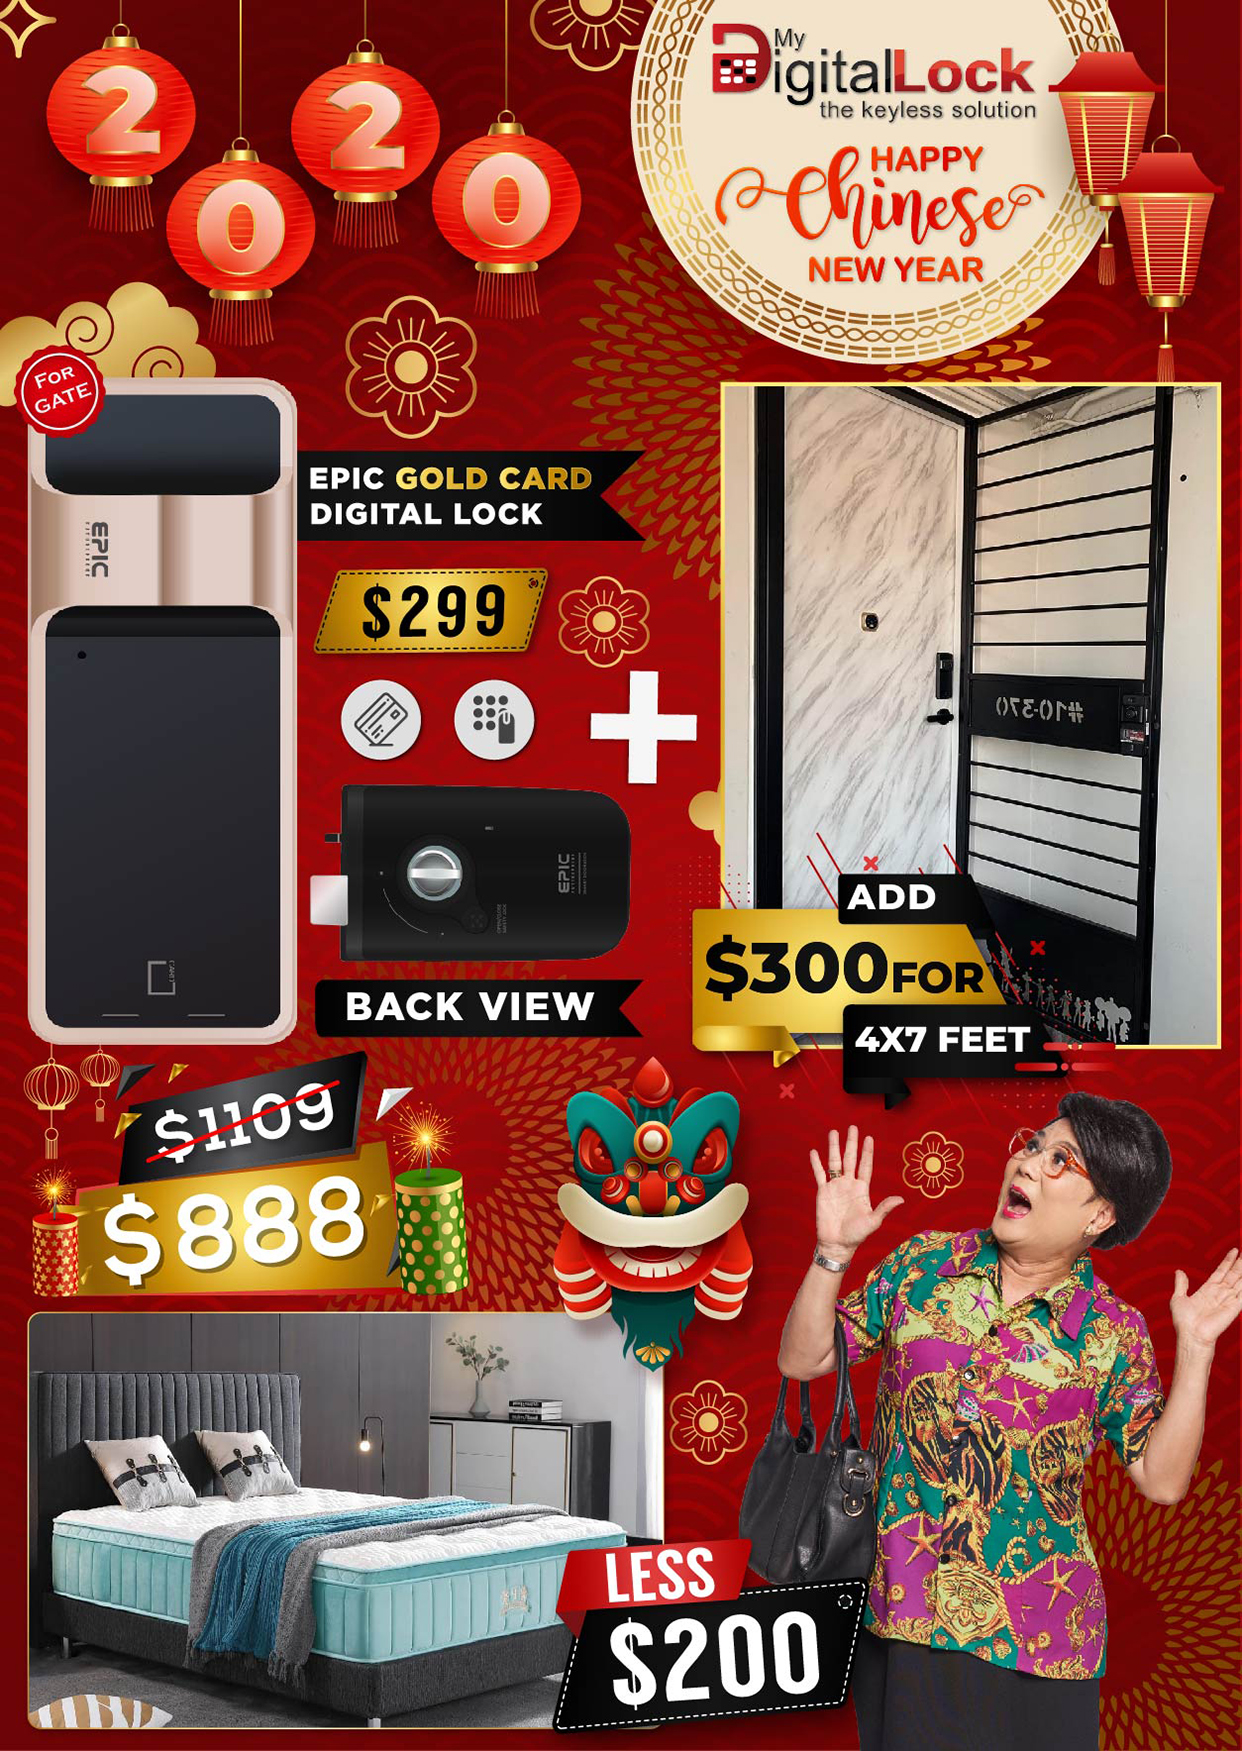 Chinese-New-year-Epic-Gold-Card-Digitallock